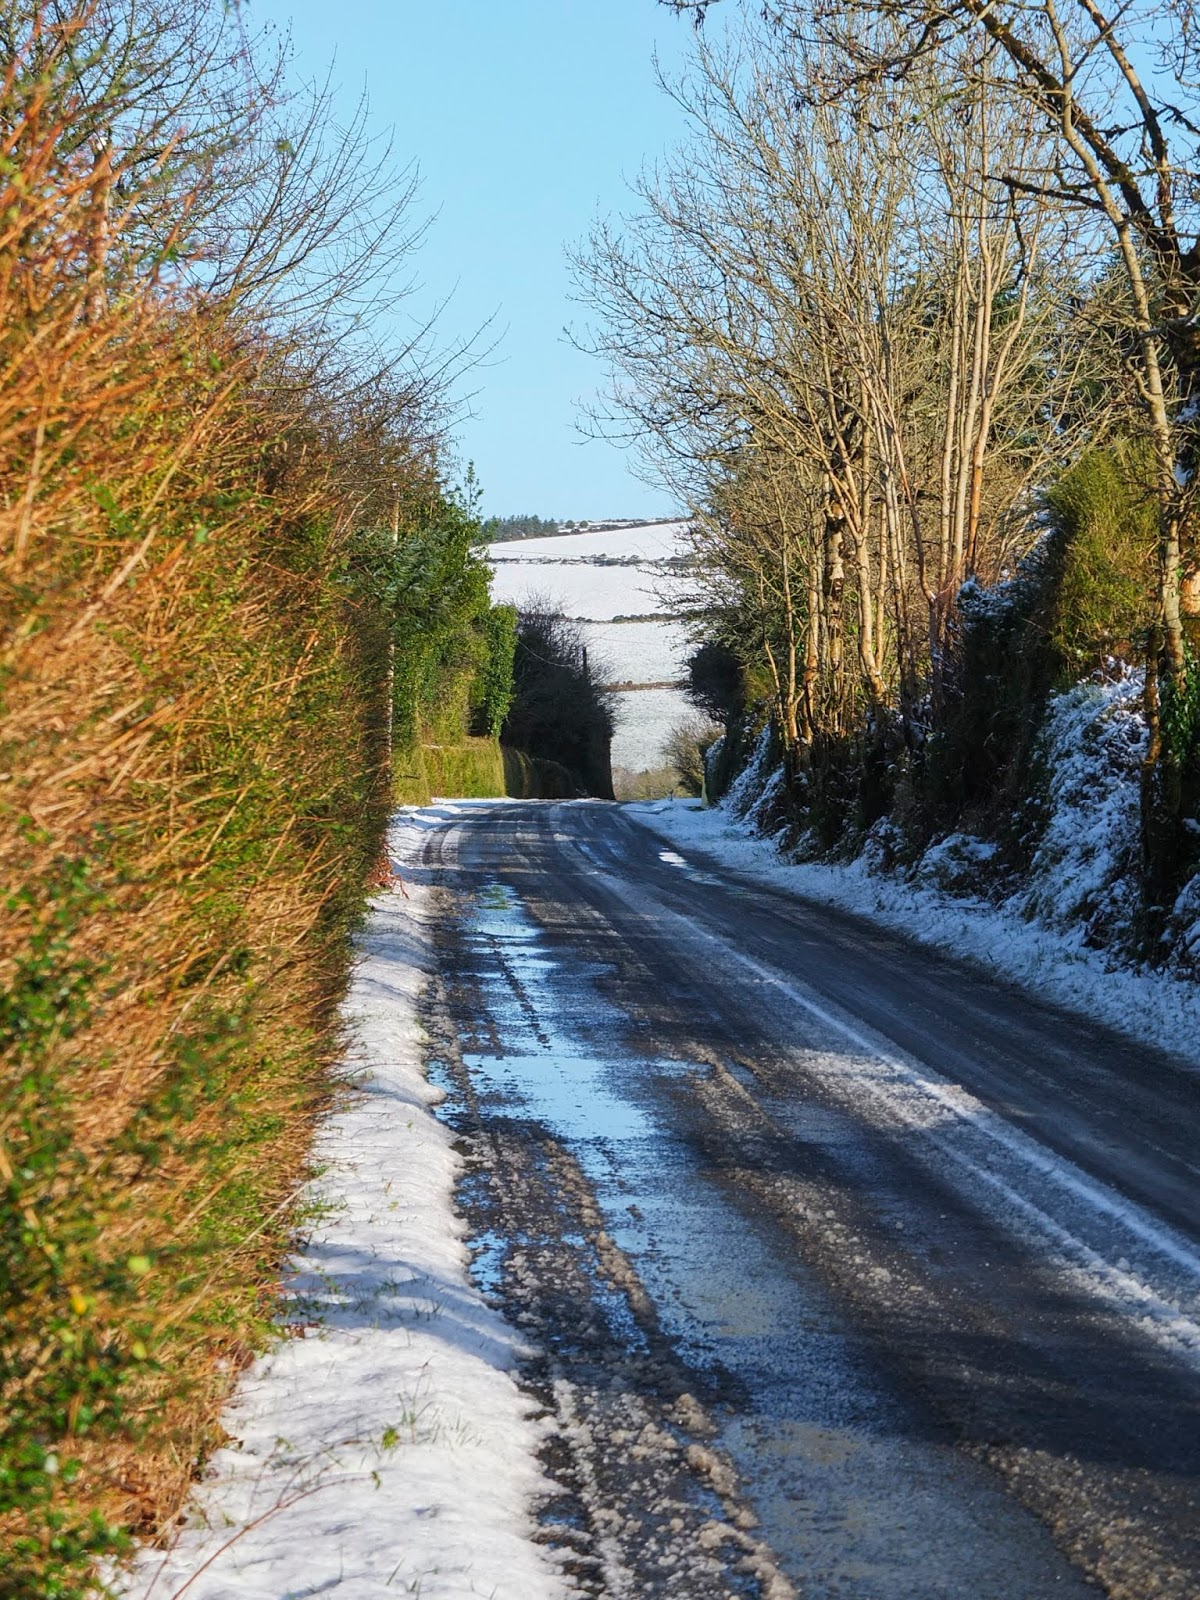 Snow melting on a county road in the mountains in North Cork.